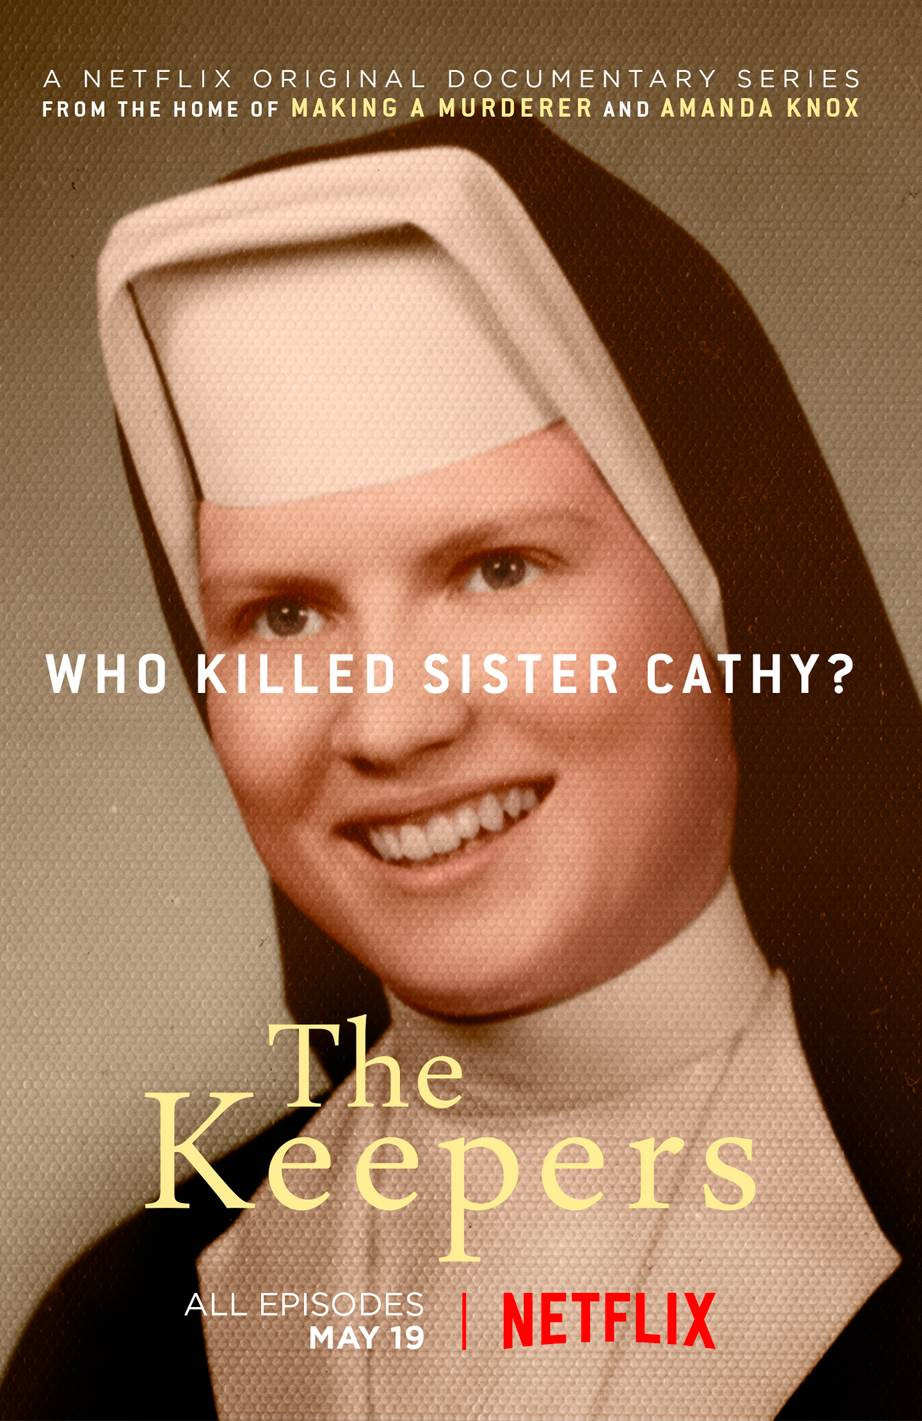 Best True Crime Series On Netflix Australia Right Now - The Keepers